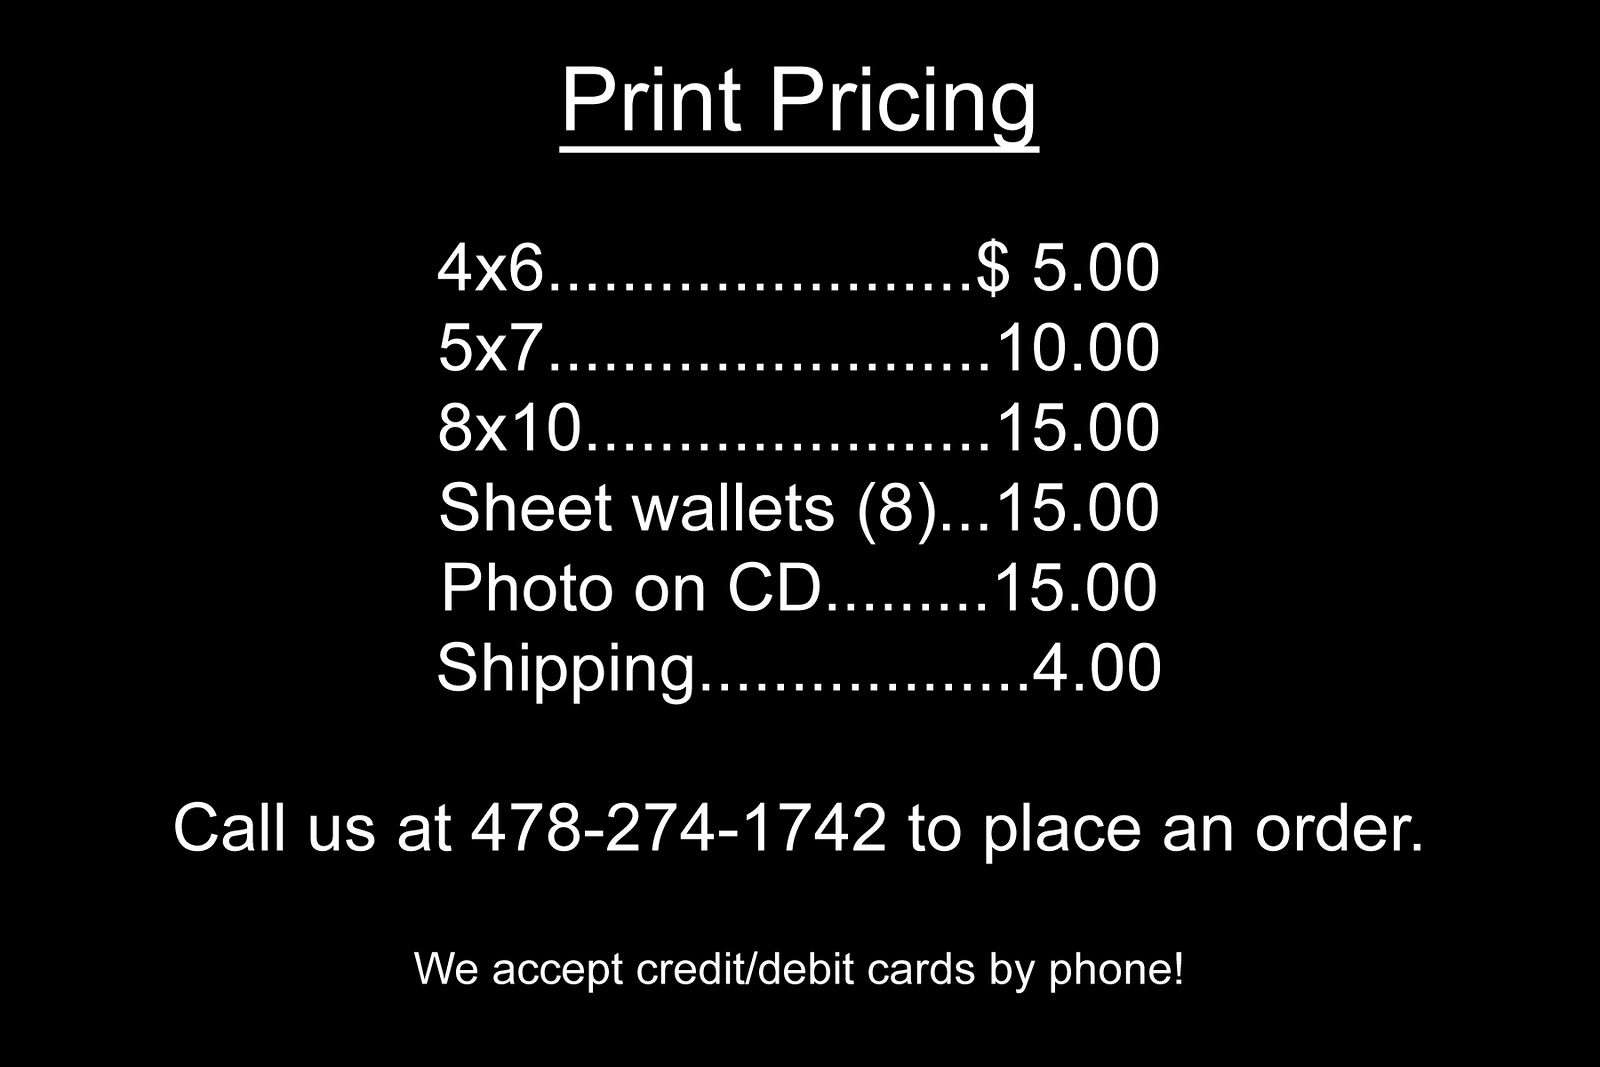 000002 Simple Pricing